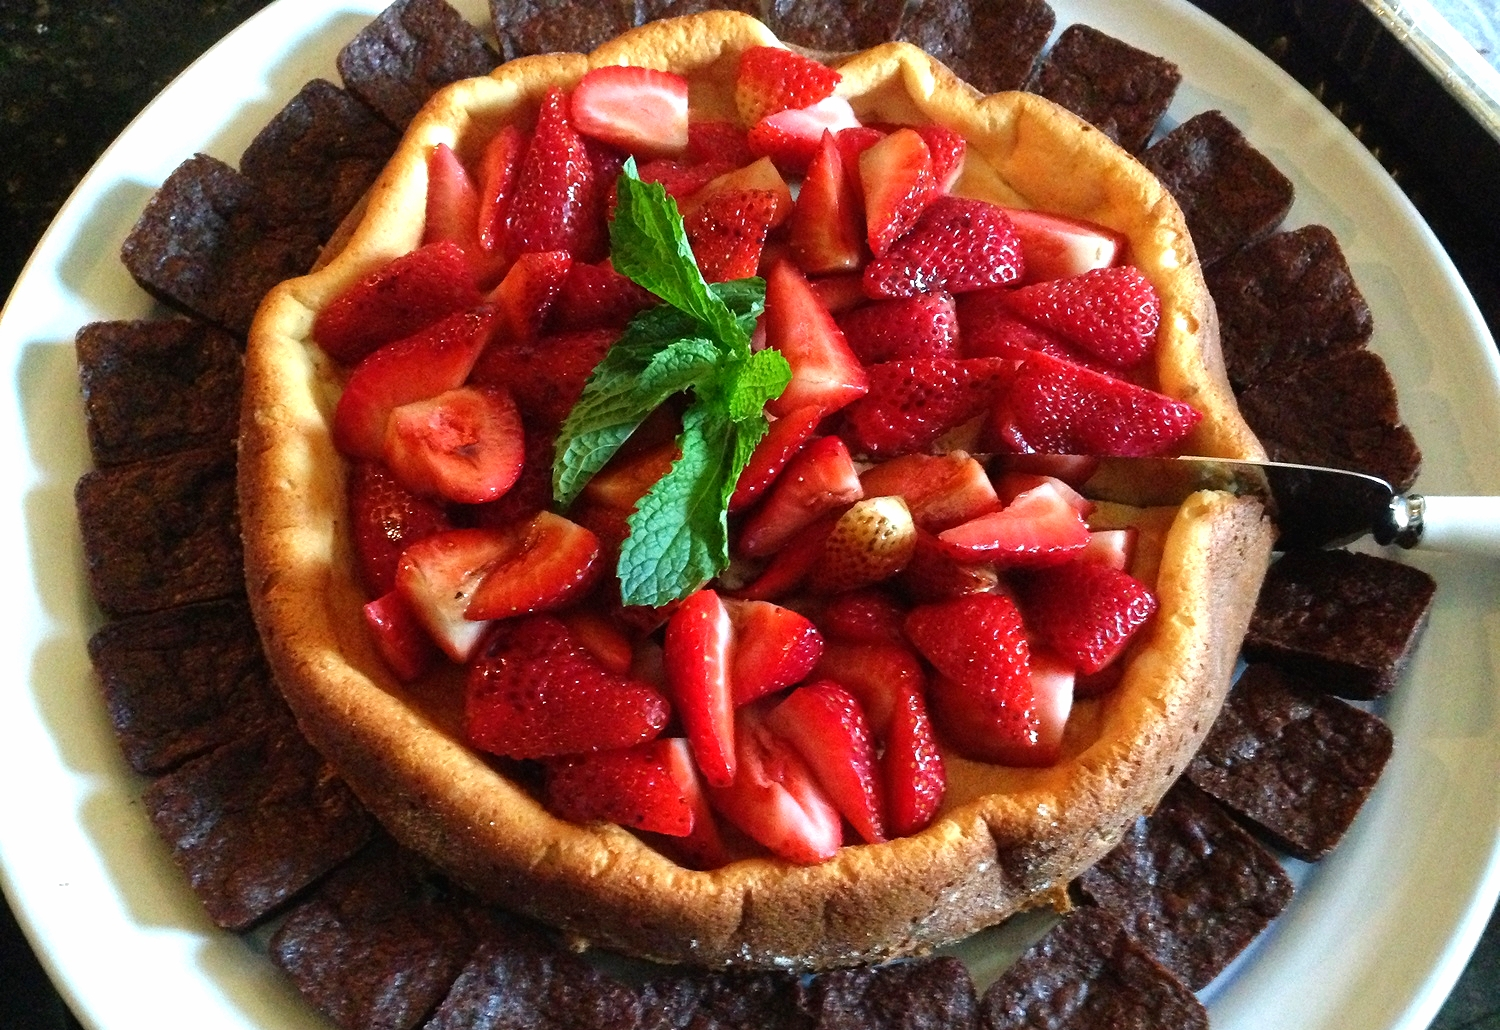 Ricotta cheesecake with strawberries and mini deep chocolate brownies